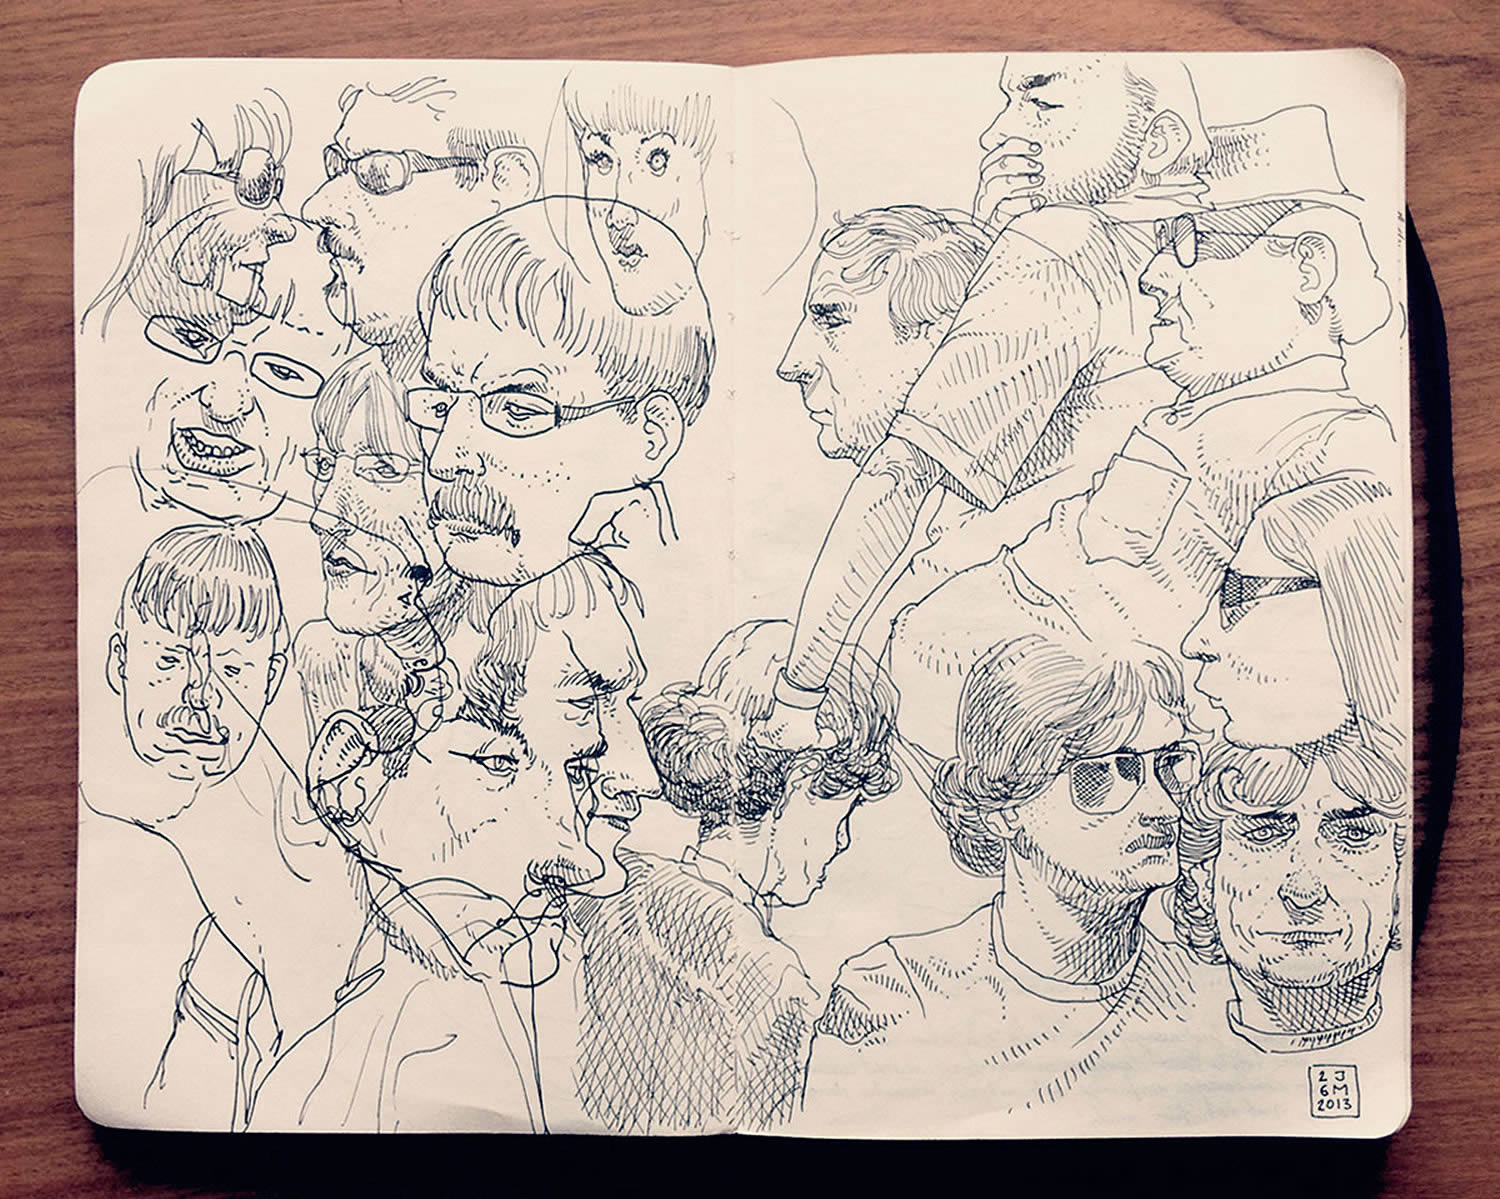 portrait studies, sketchbook drawing by Jared Muralt